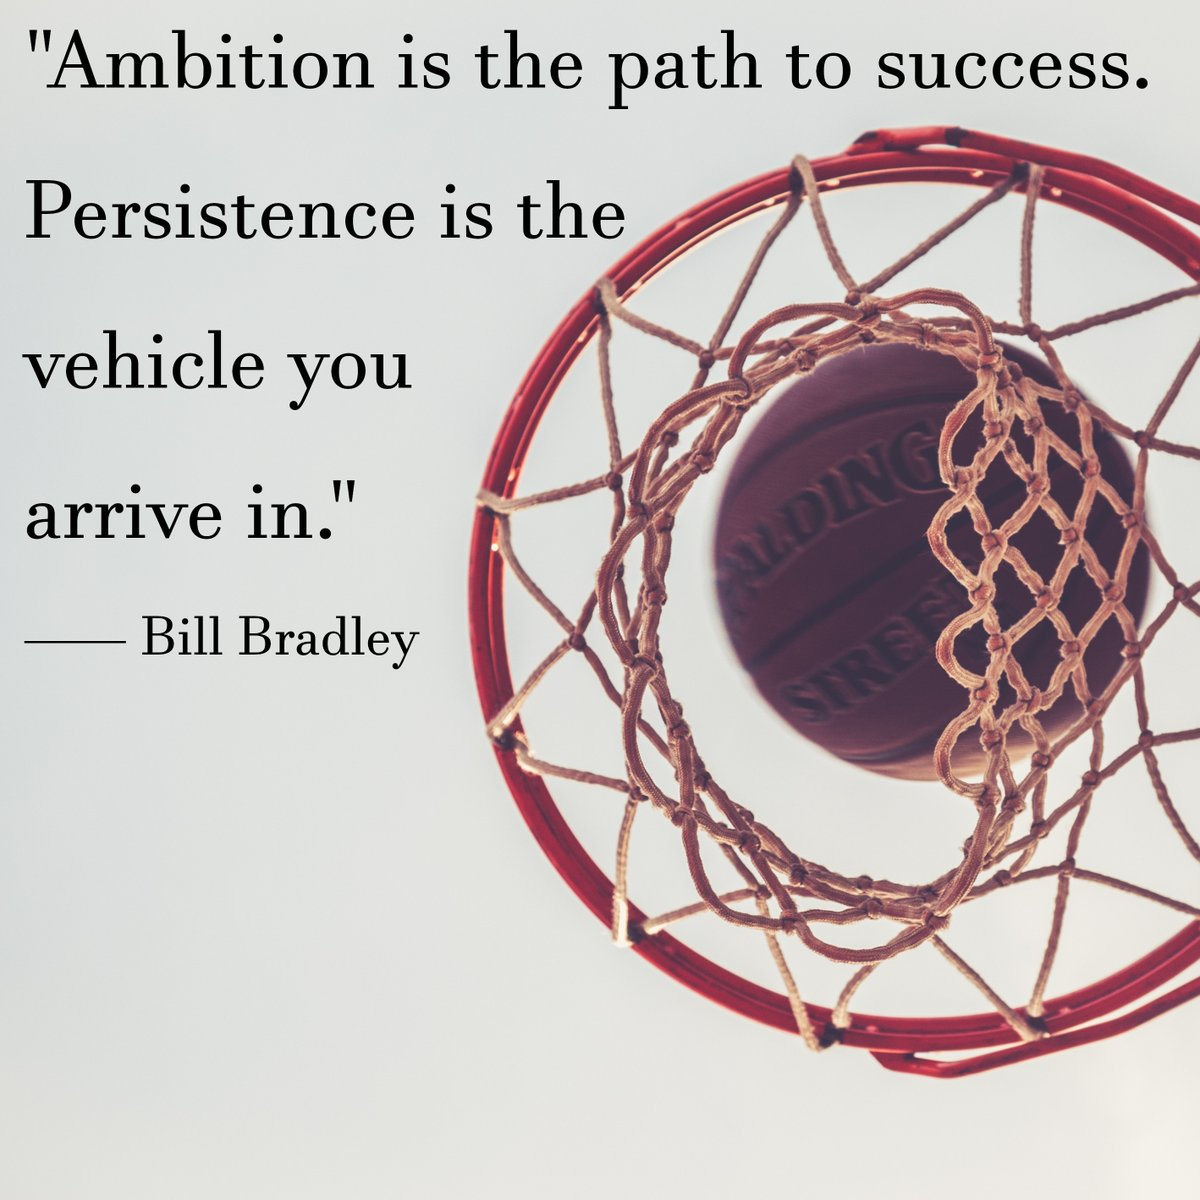 #Persistence paves the way to #success.  #basketballislife #basketballlovers #basketballquotes #billbradley https://t.co/DWEPxVCI42